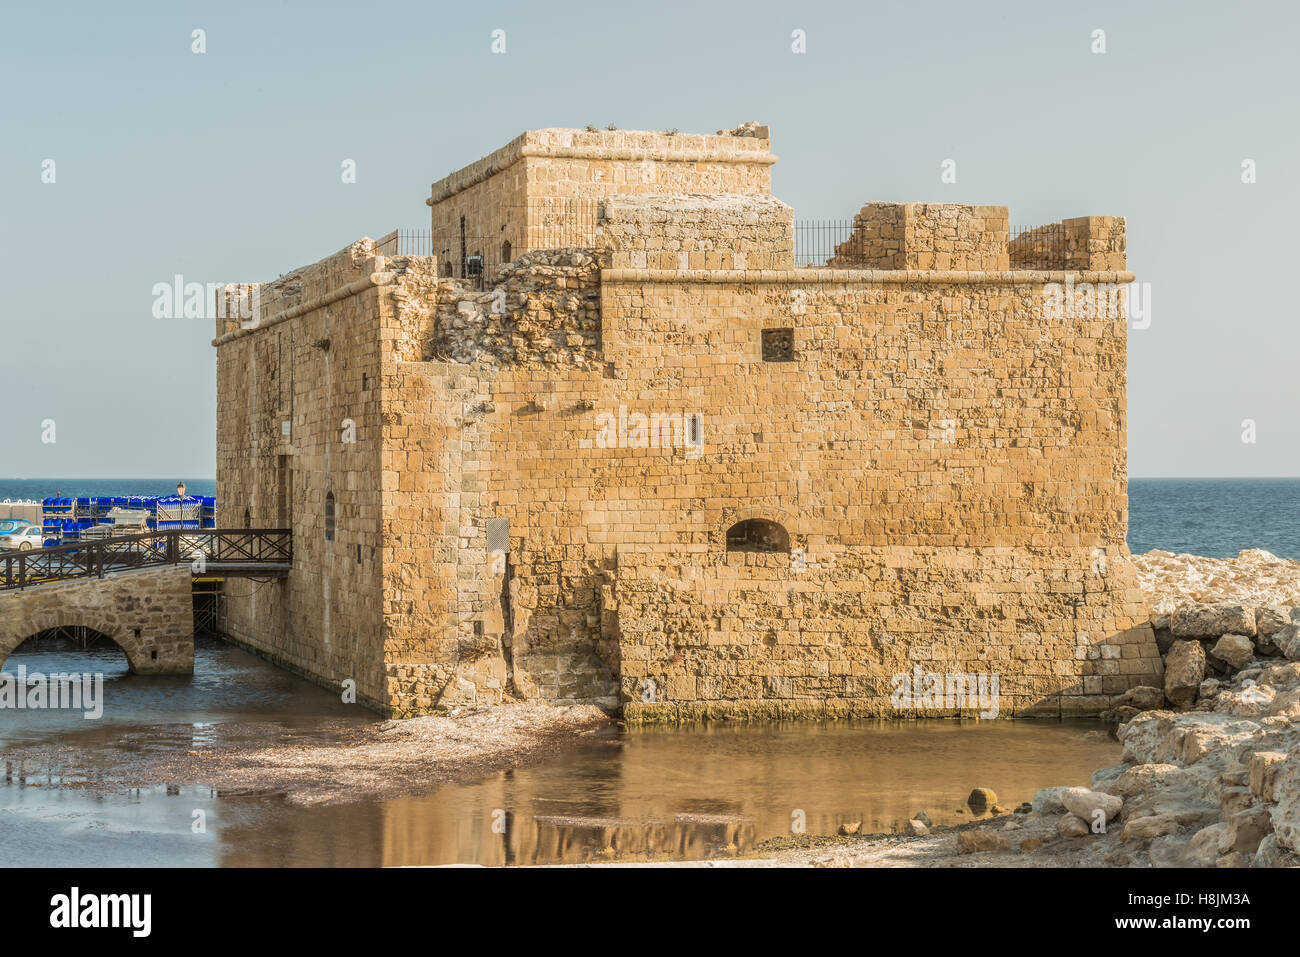 Port fort in Paphos, Cyprus. - Stock Image